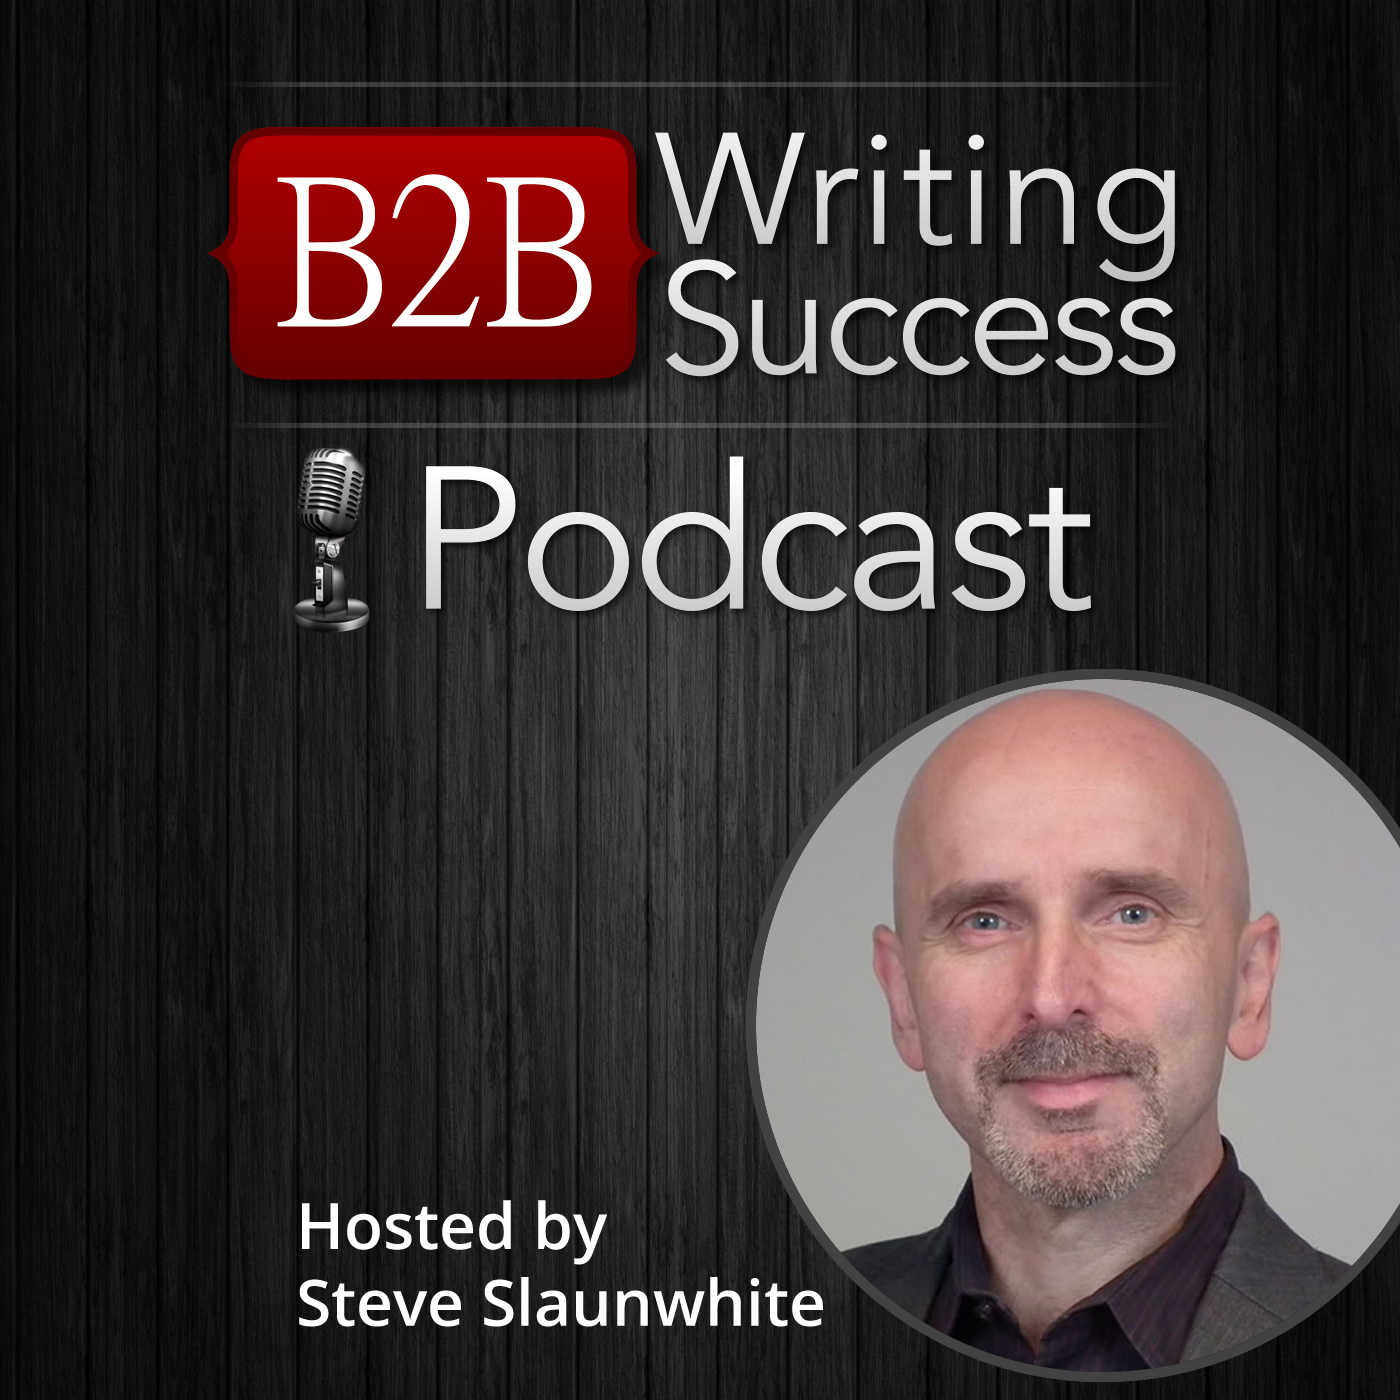 B2B Writing Success Podcast